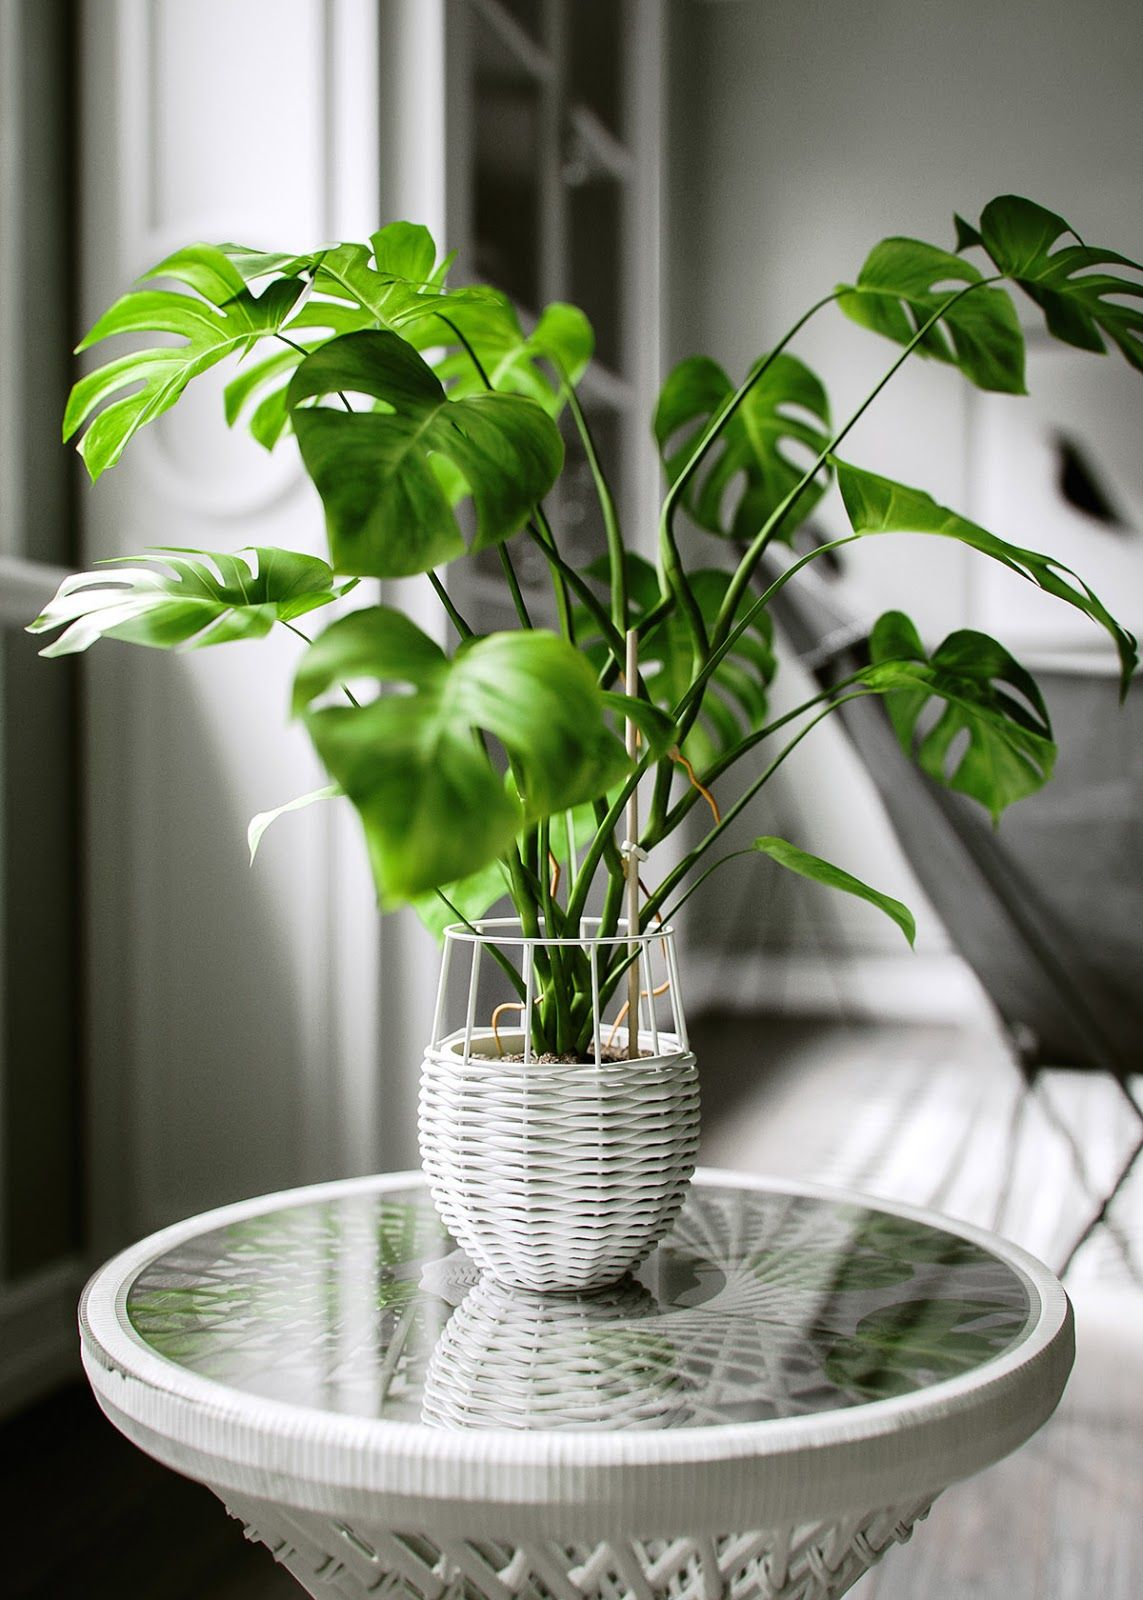 All of these indoor plants are easy to keep alive and perfect for small spaces